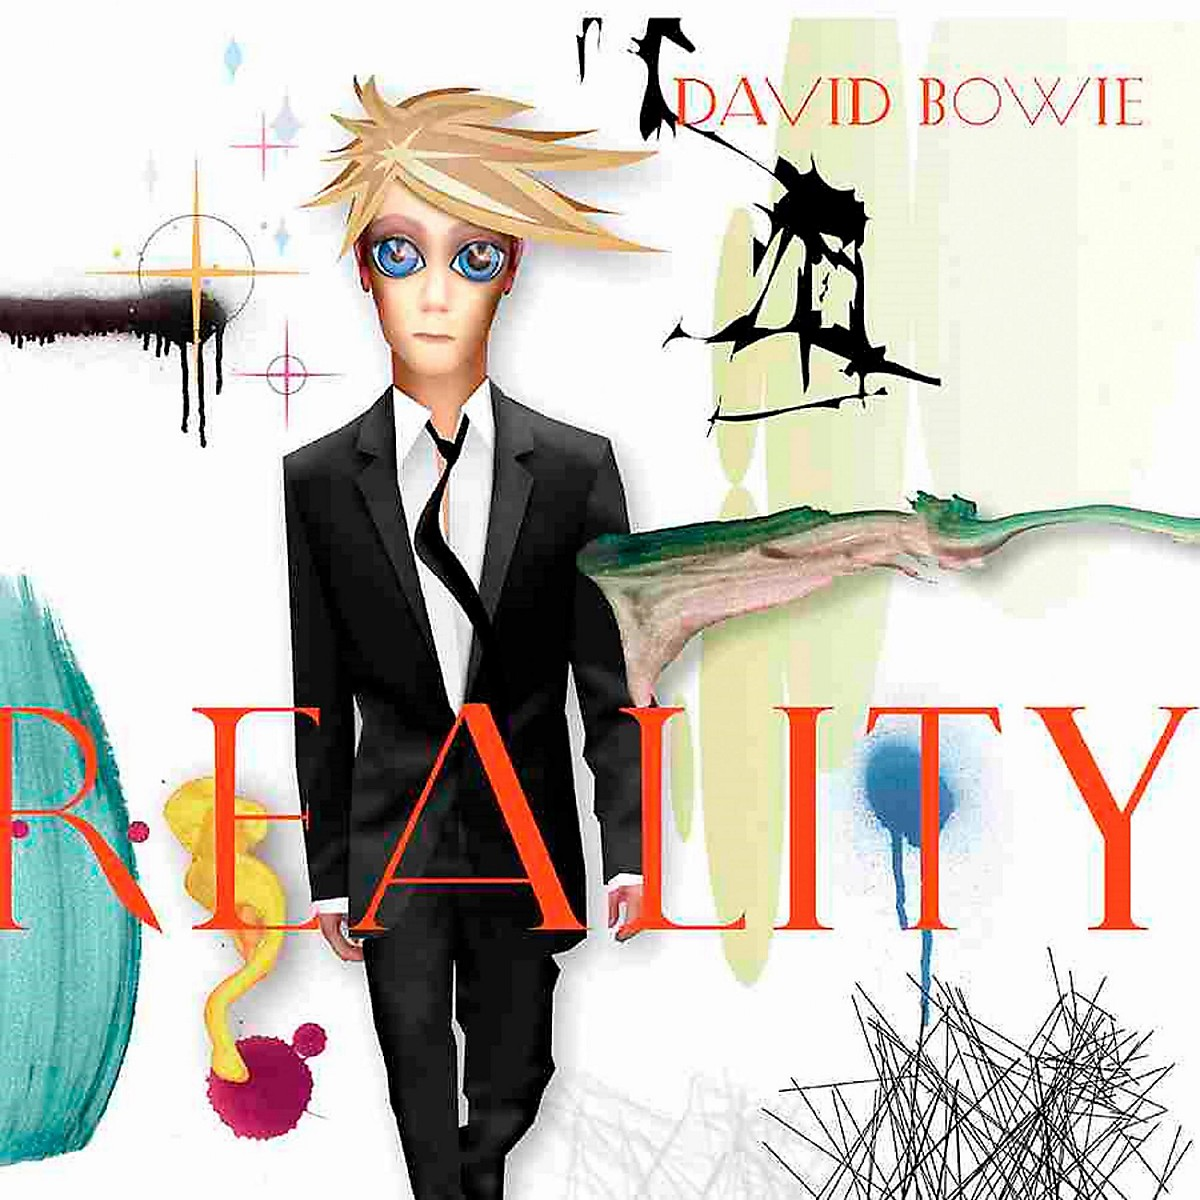 The Orchard David Bowie - Reality LP